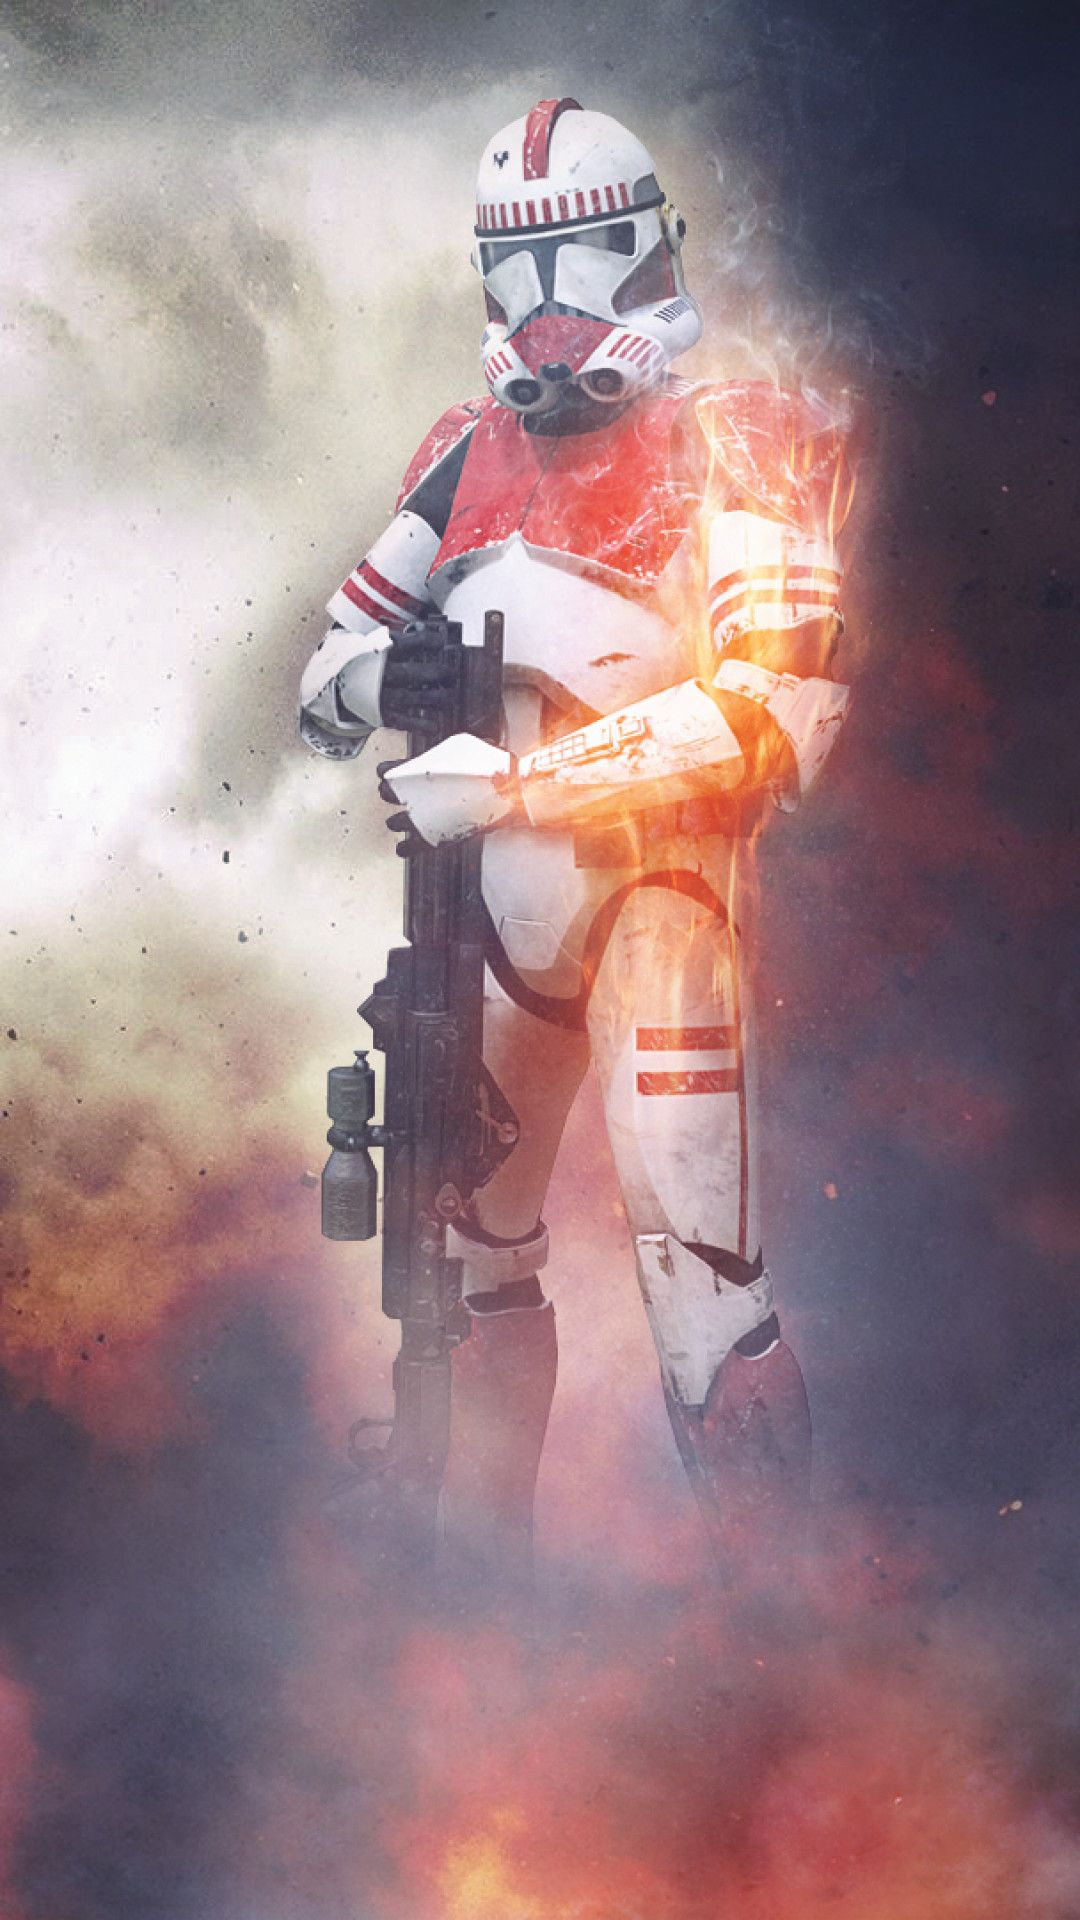 Star Wars Backgrounds Iphone : backgrounds, iphone, Clone, Trooper, IPhone, Wallpaper, Images), Wallpaper,, Wars,